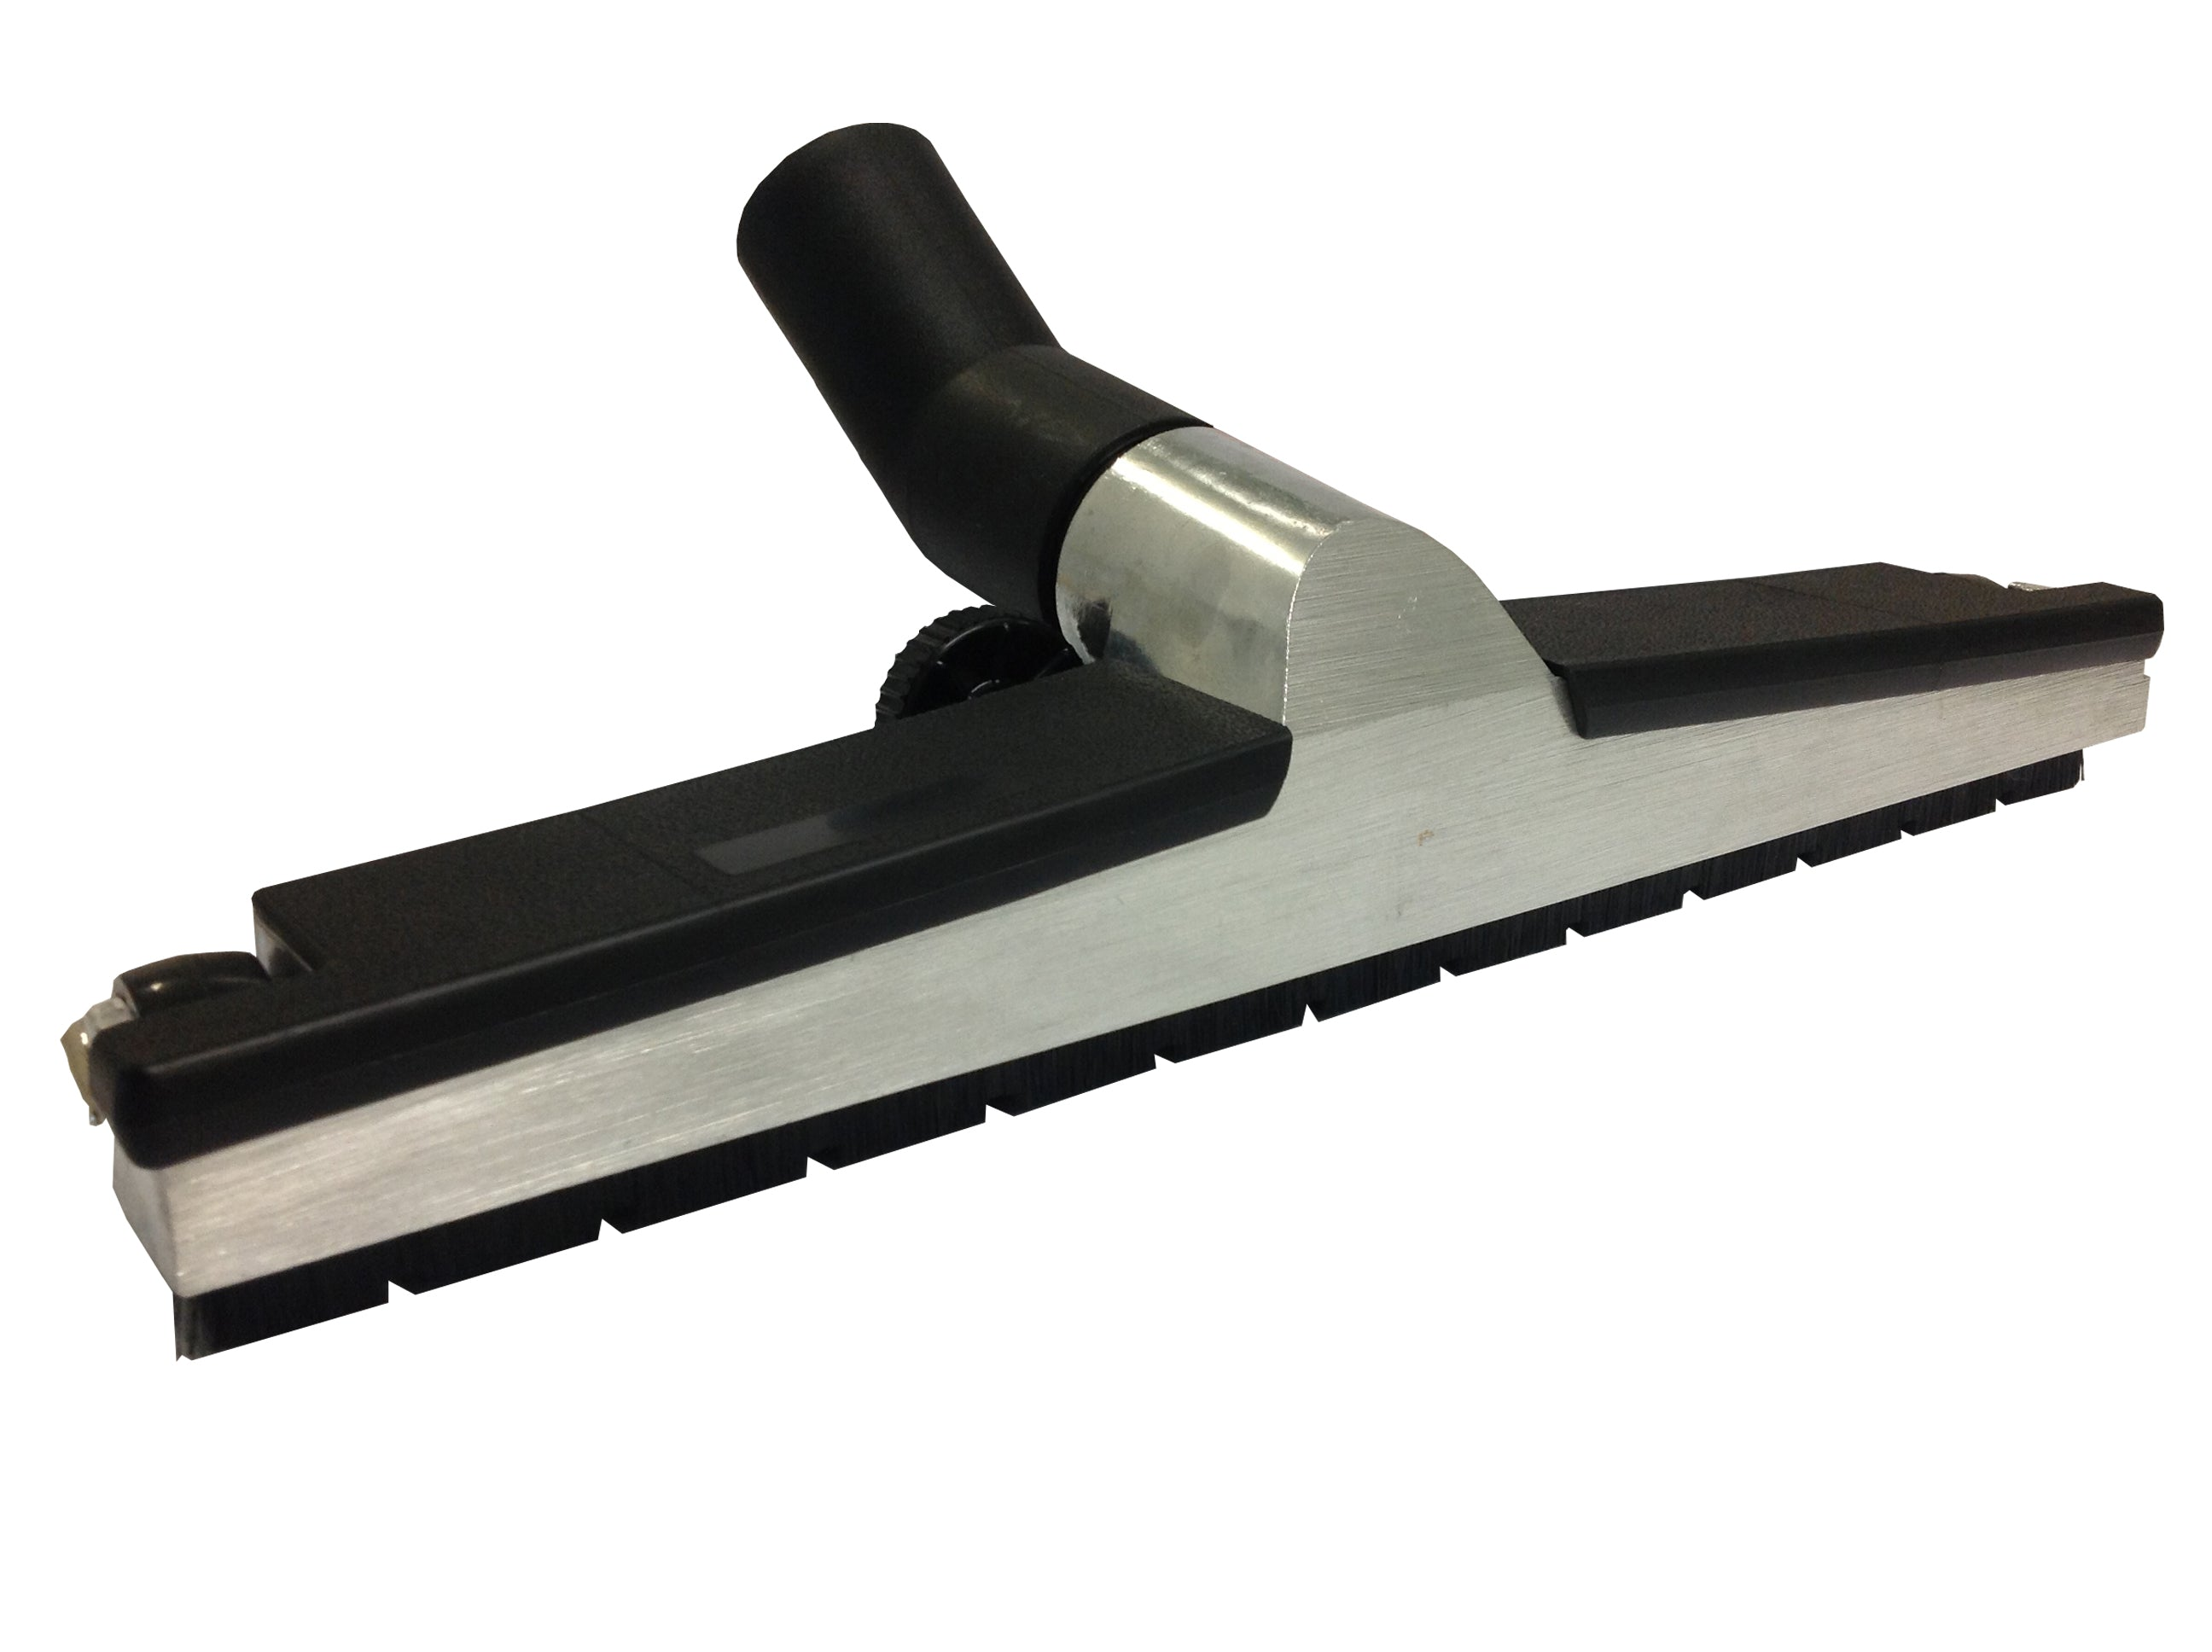 WESSEL WERK GRD370 BRUSH FLOOR TOOL 36MM X 370MM WIDE - ALUMINIUM/BLACK